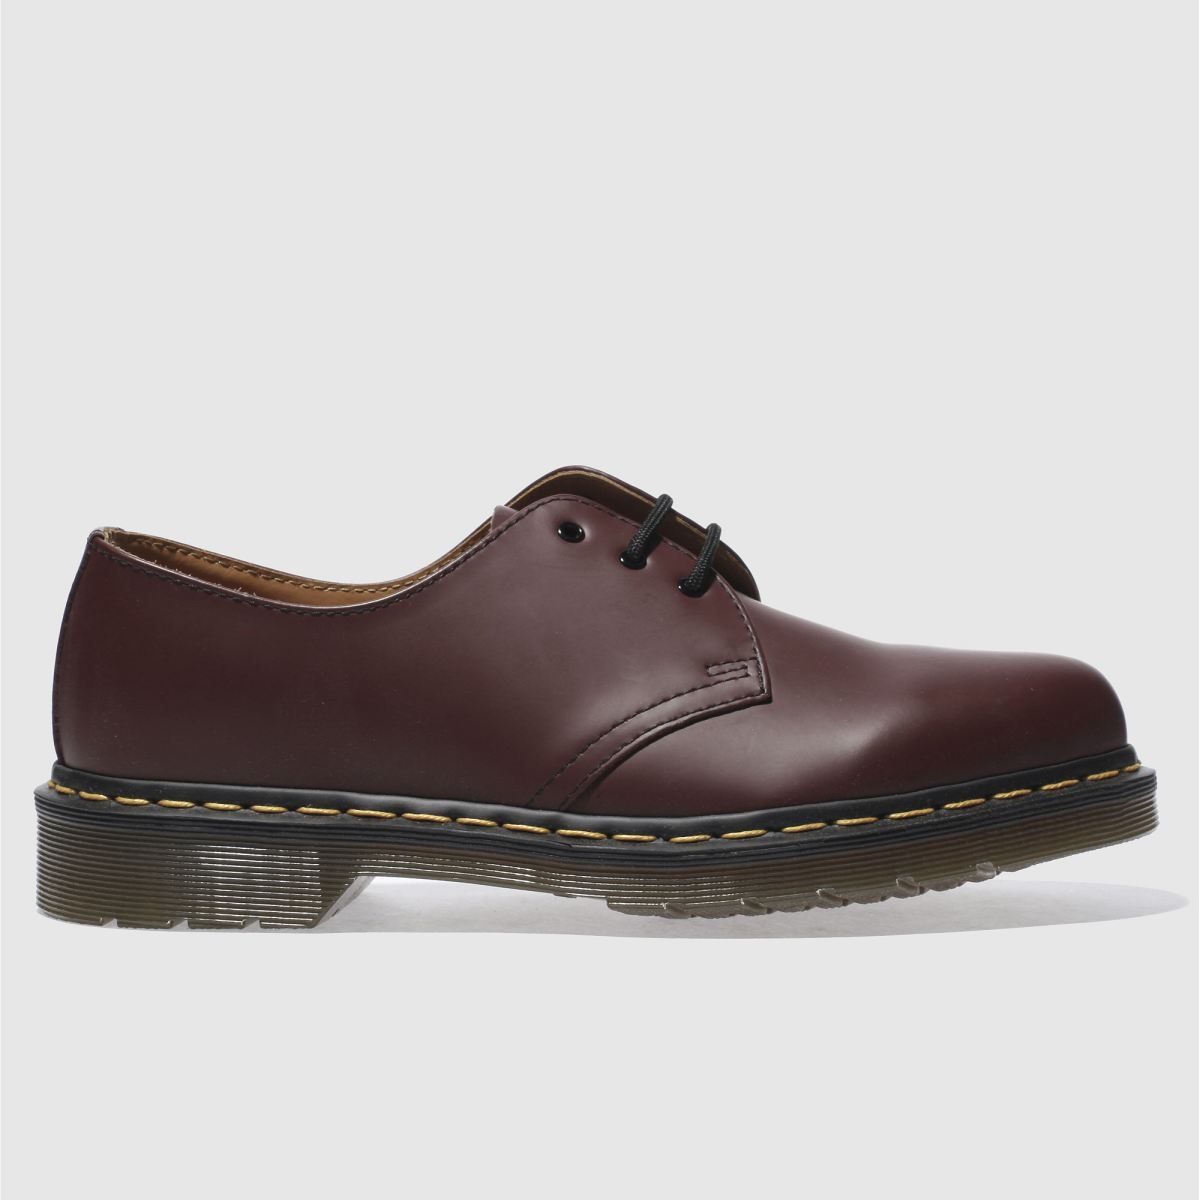 dr martens burgundy 1461z gibson shoes